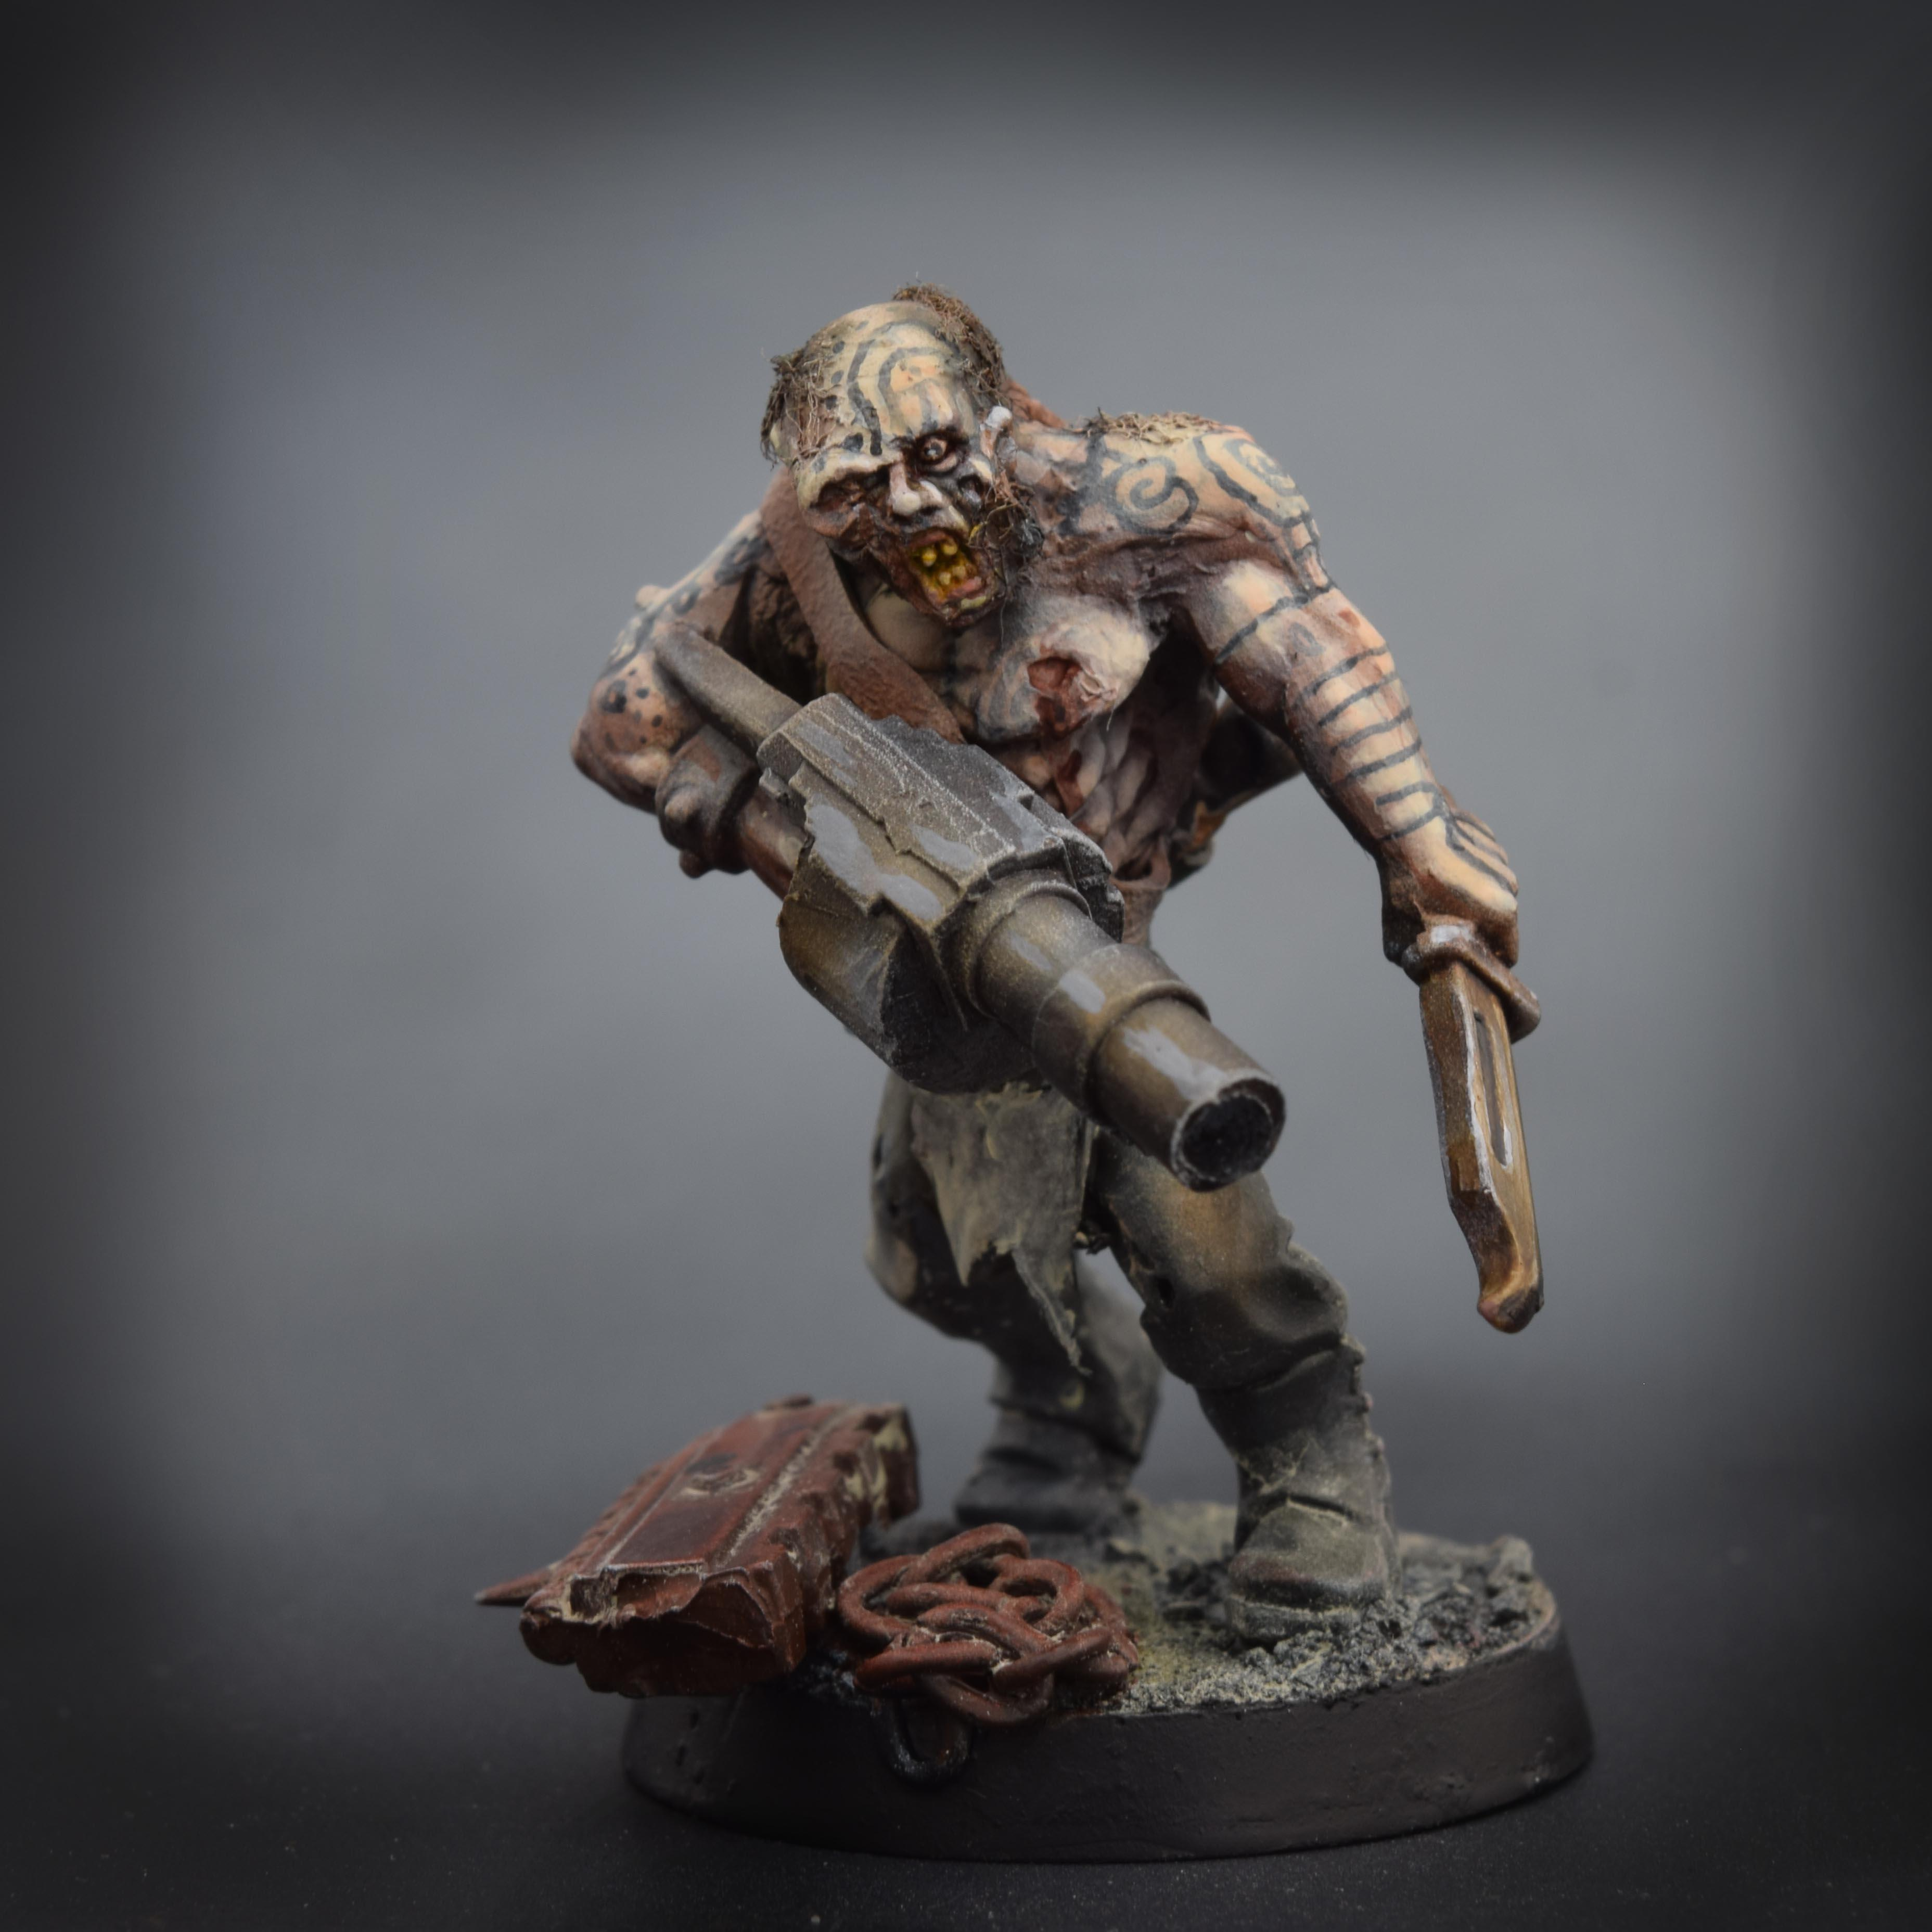 Am, Chaos, Chaos Space Marines, Cultist, Imperial Guard, Mutant